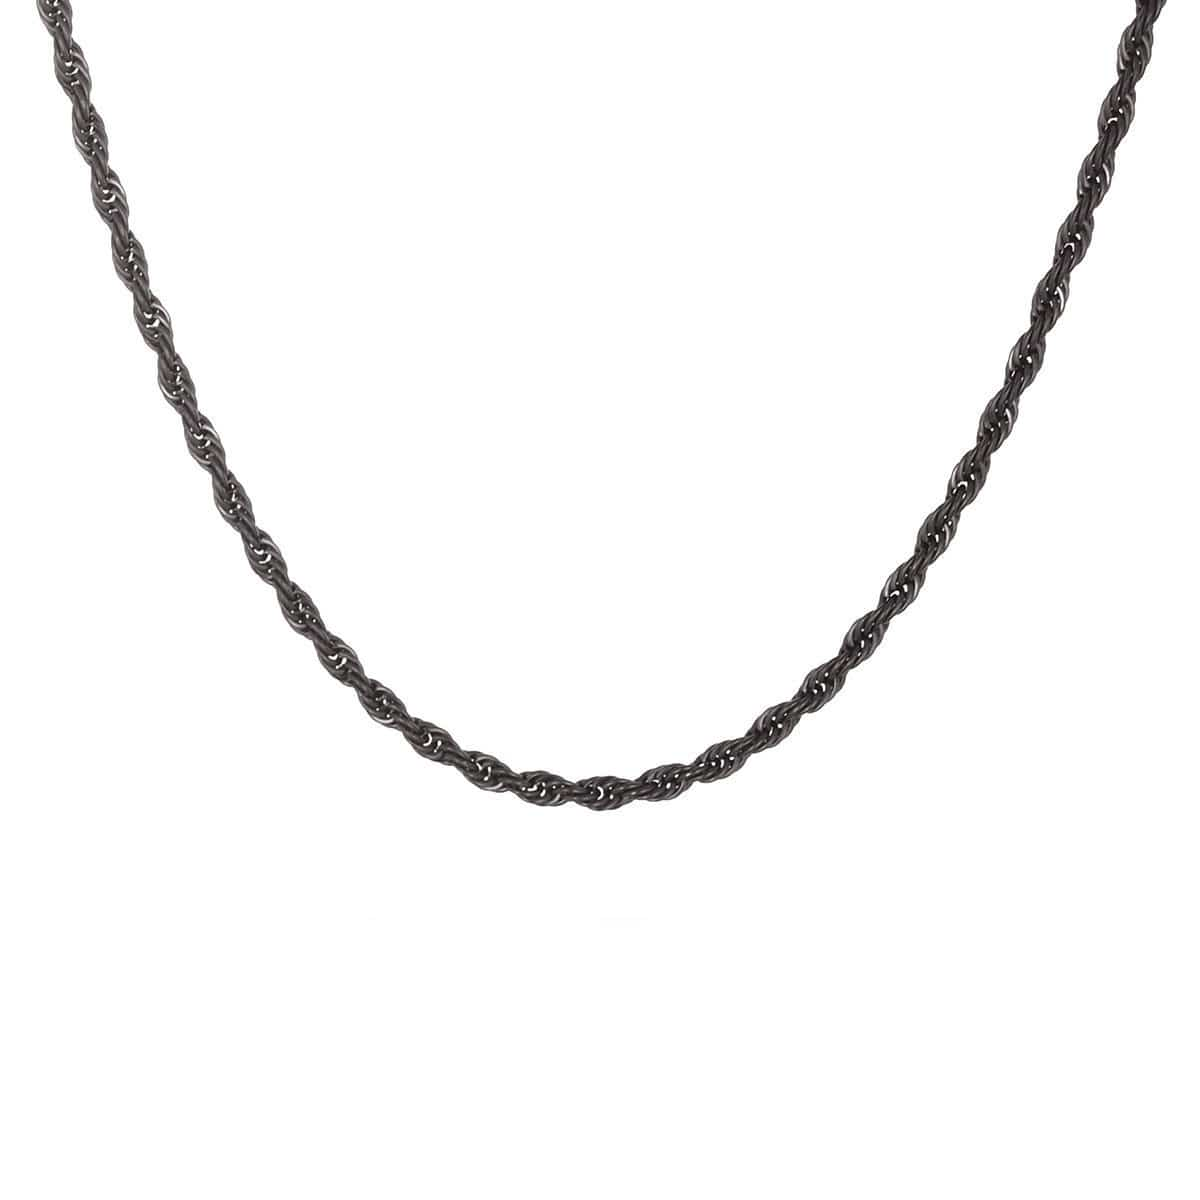 Black Stainless Steel Polished 3mm Rope Chain Chains